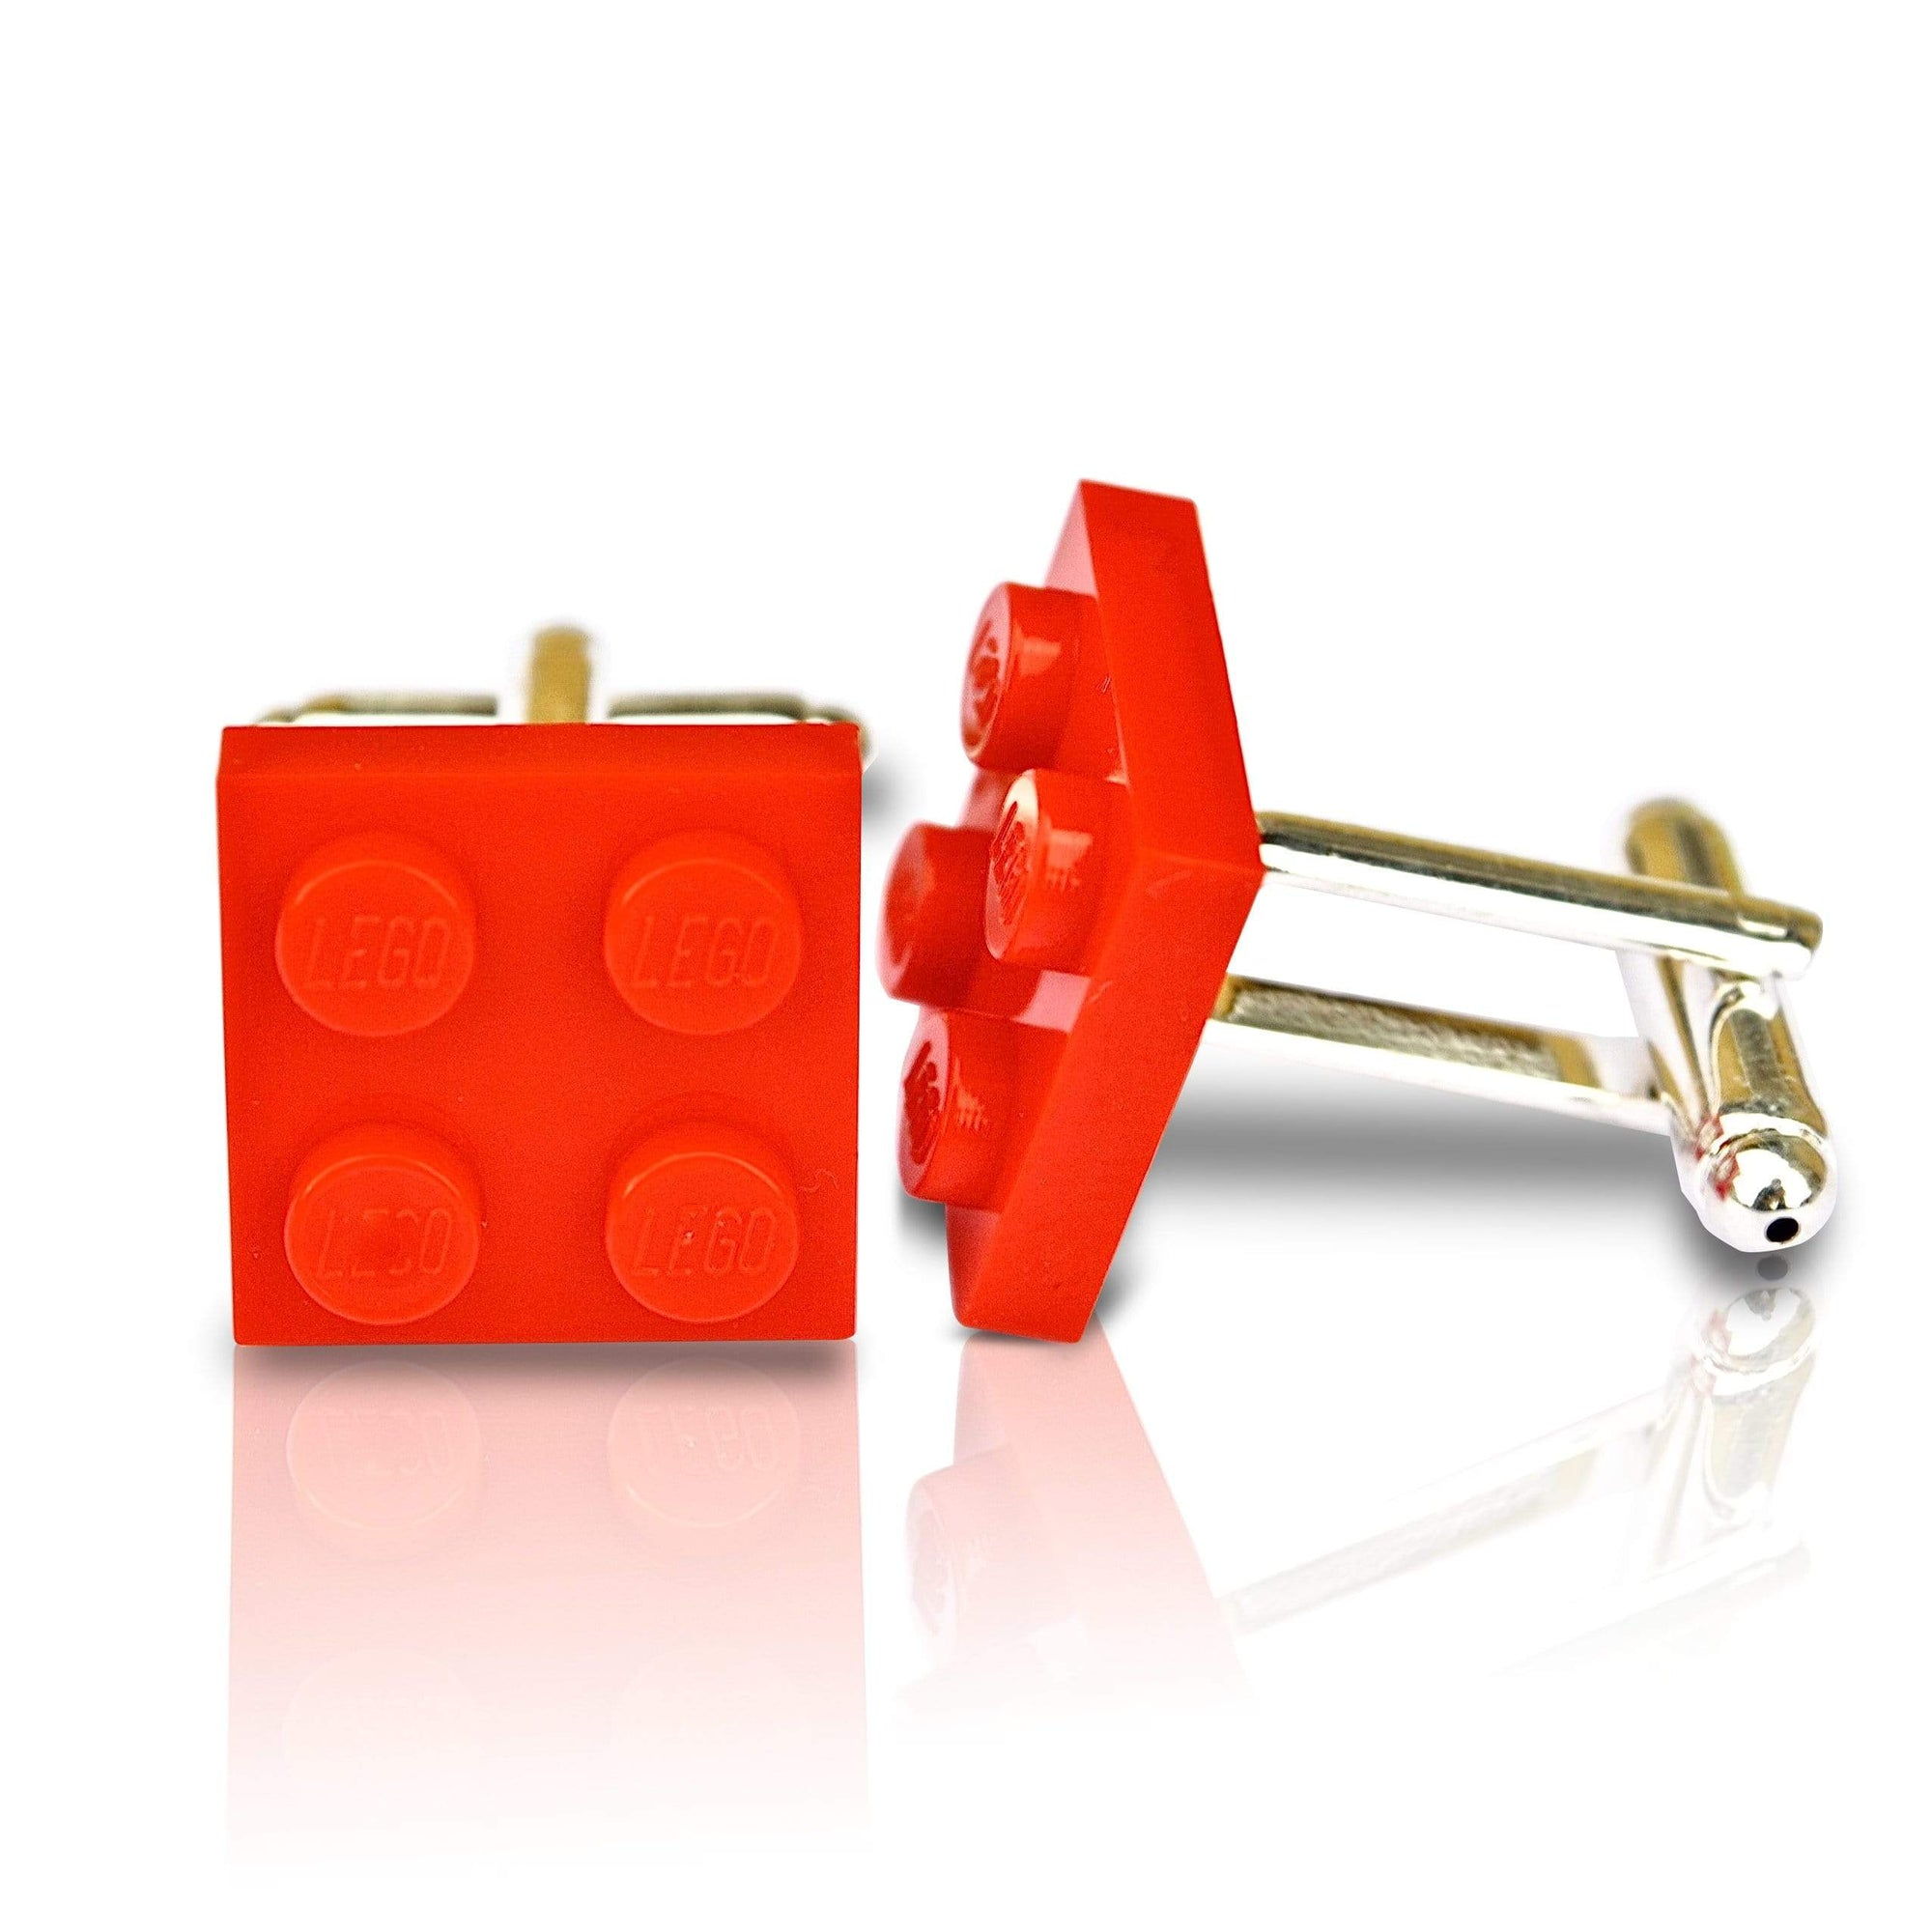 Men's Cufflinks | Lingo Luxe The Red Brick-Lingo Luxe Bespoke